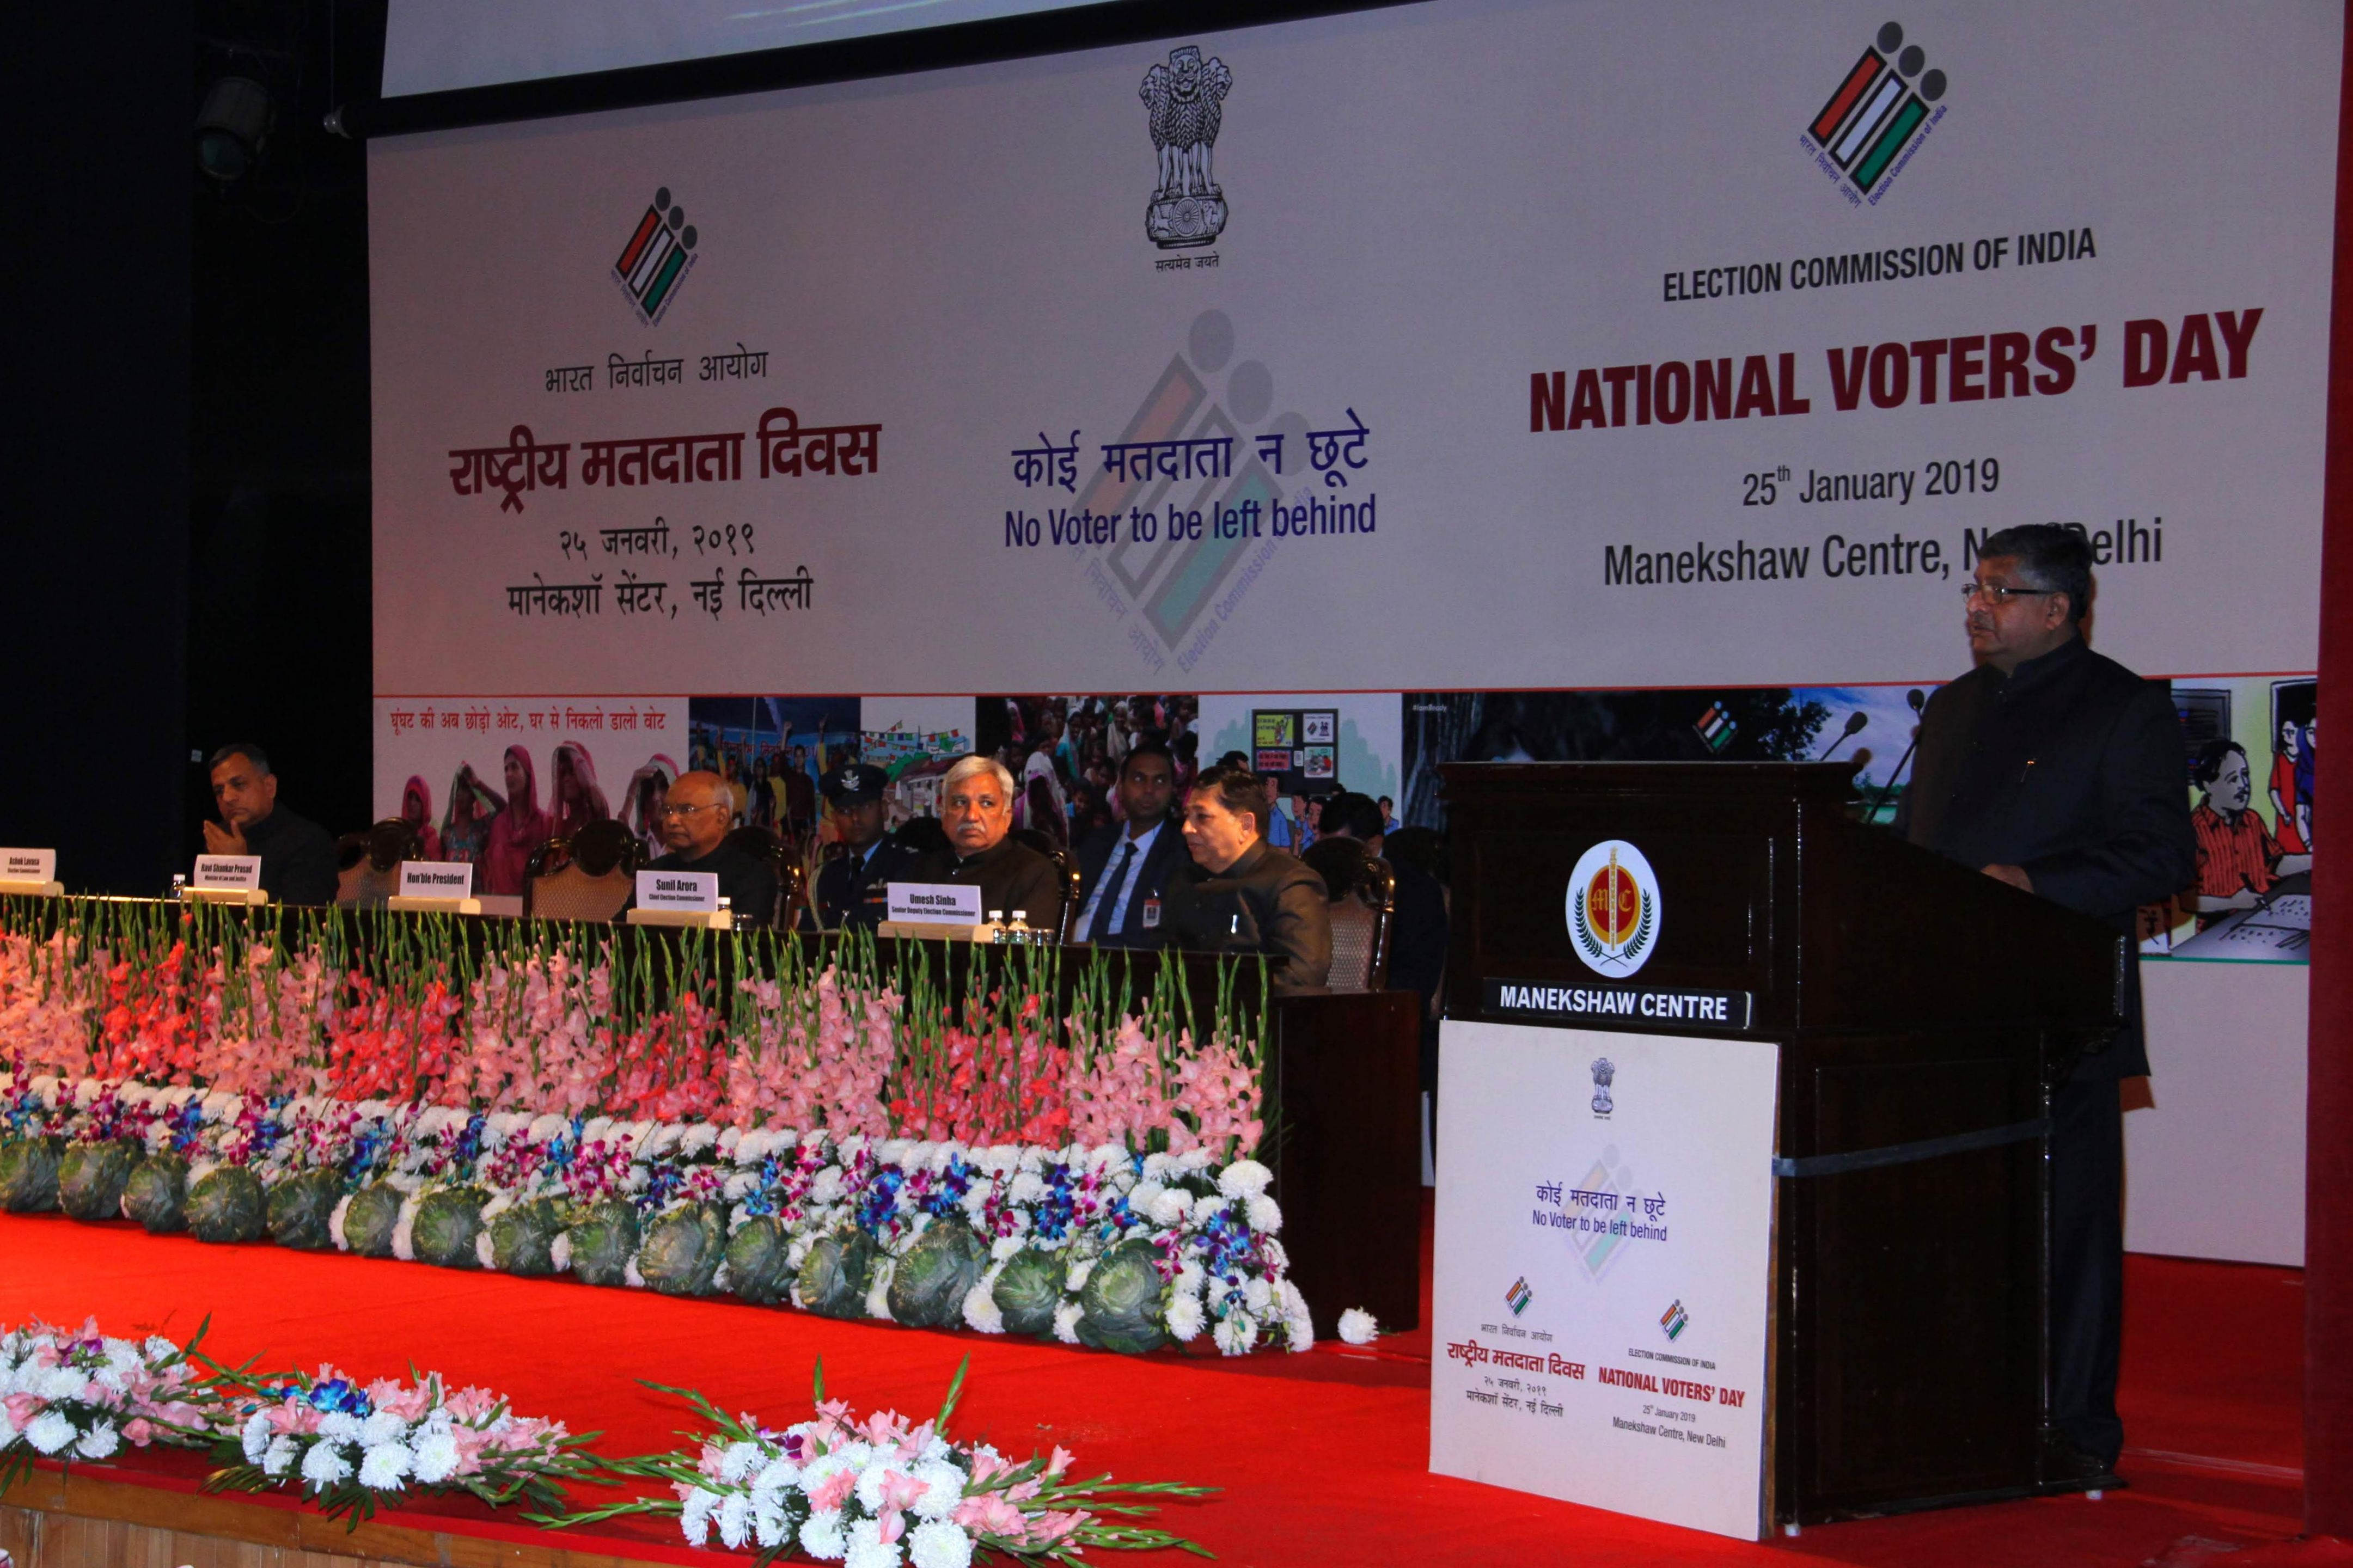 Law Minister addressing the audience